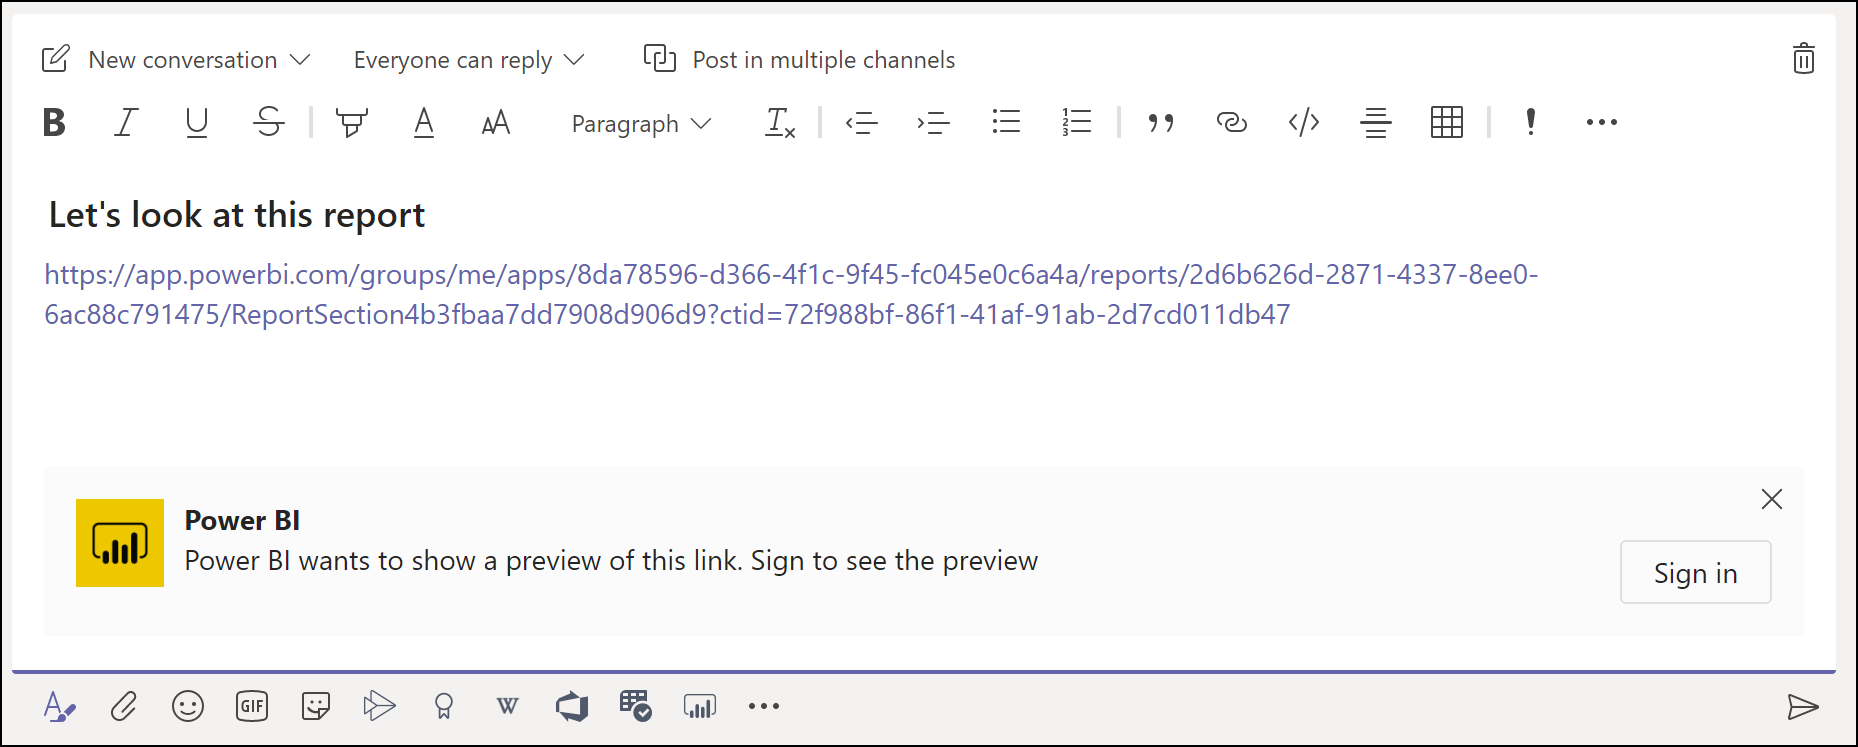 The Microsoft Teams message box is shown with the sign in experience for needed to get link previews for Power BI.